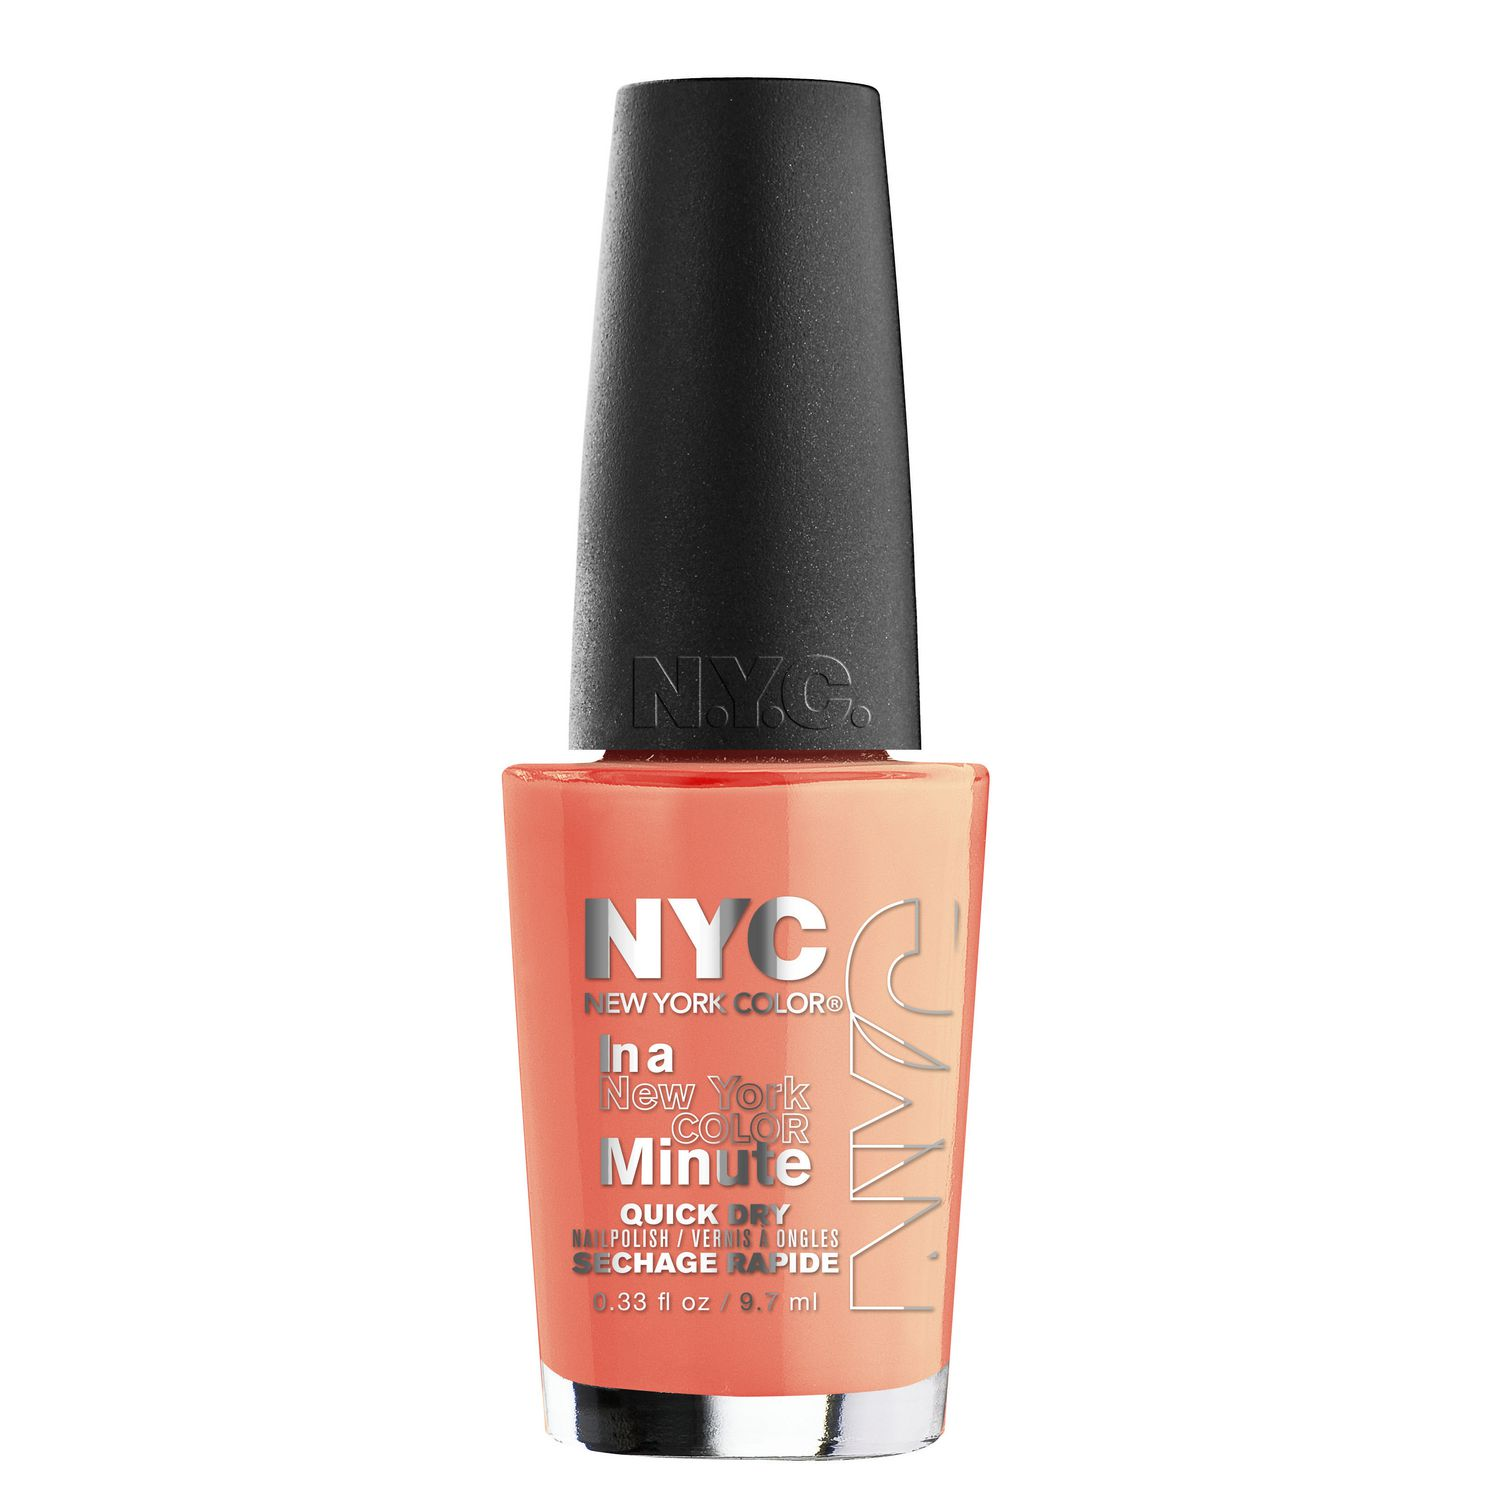 NYC New York Color In A New York Minute Nail Color | Walmart Canada